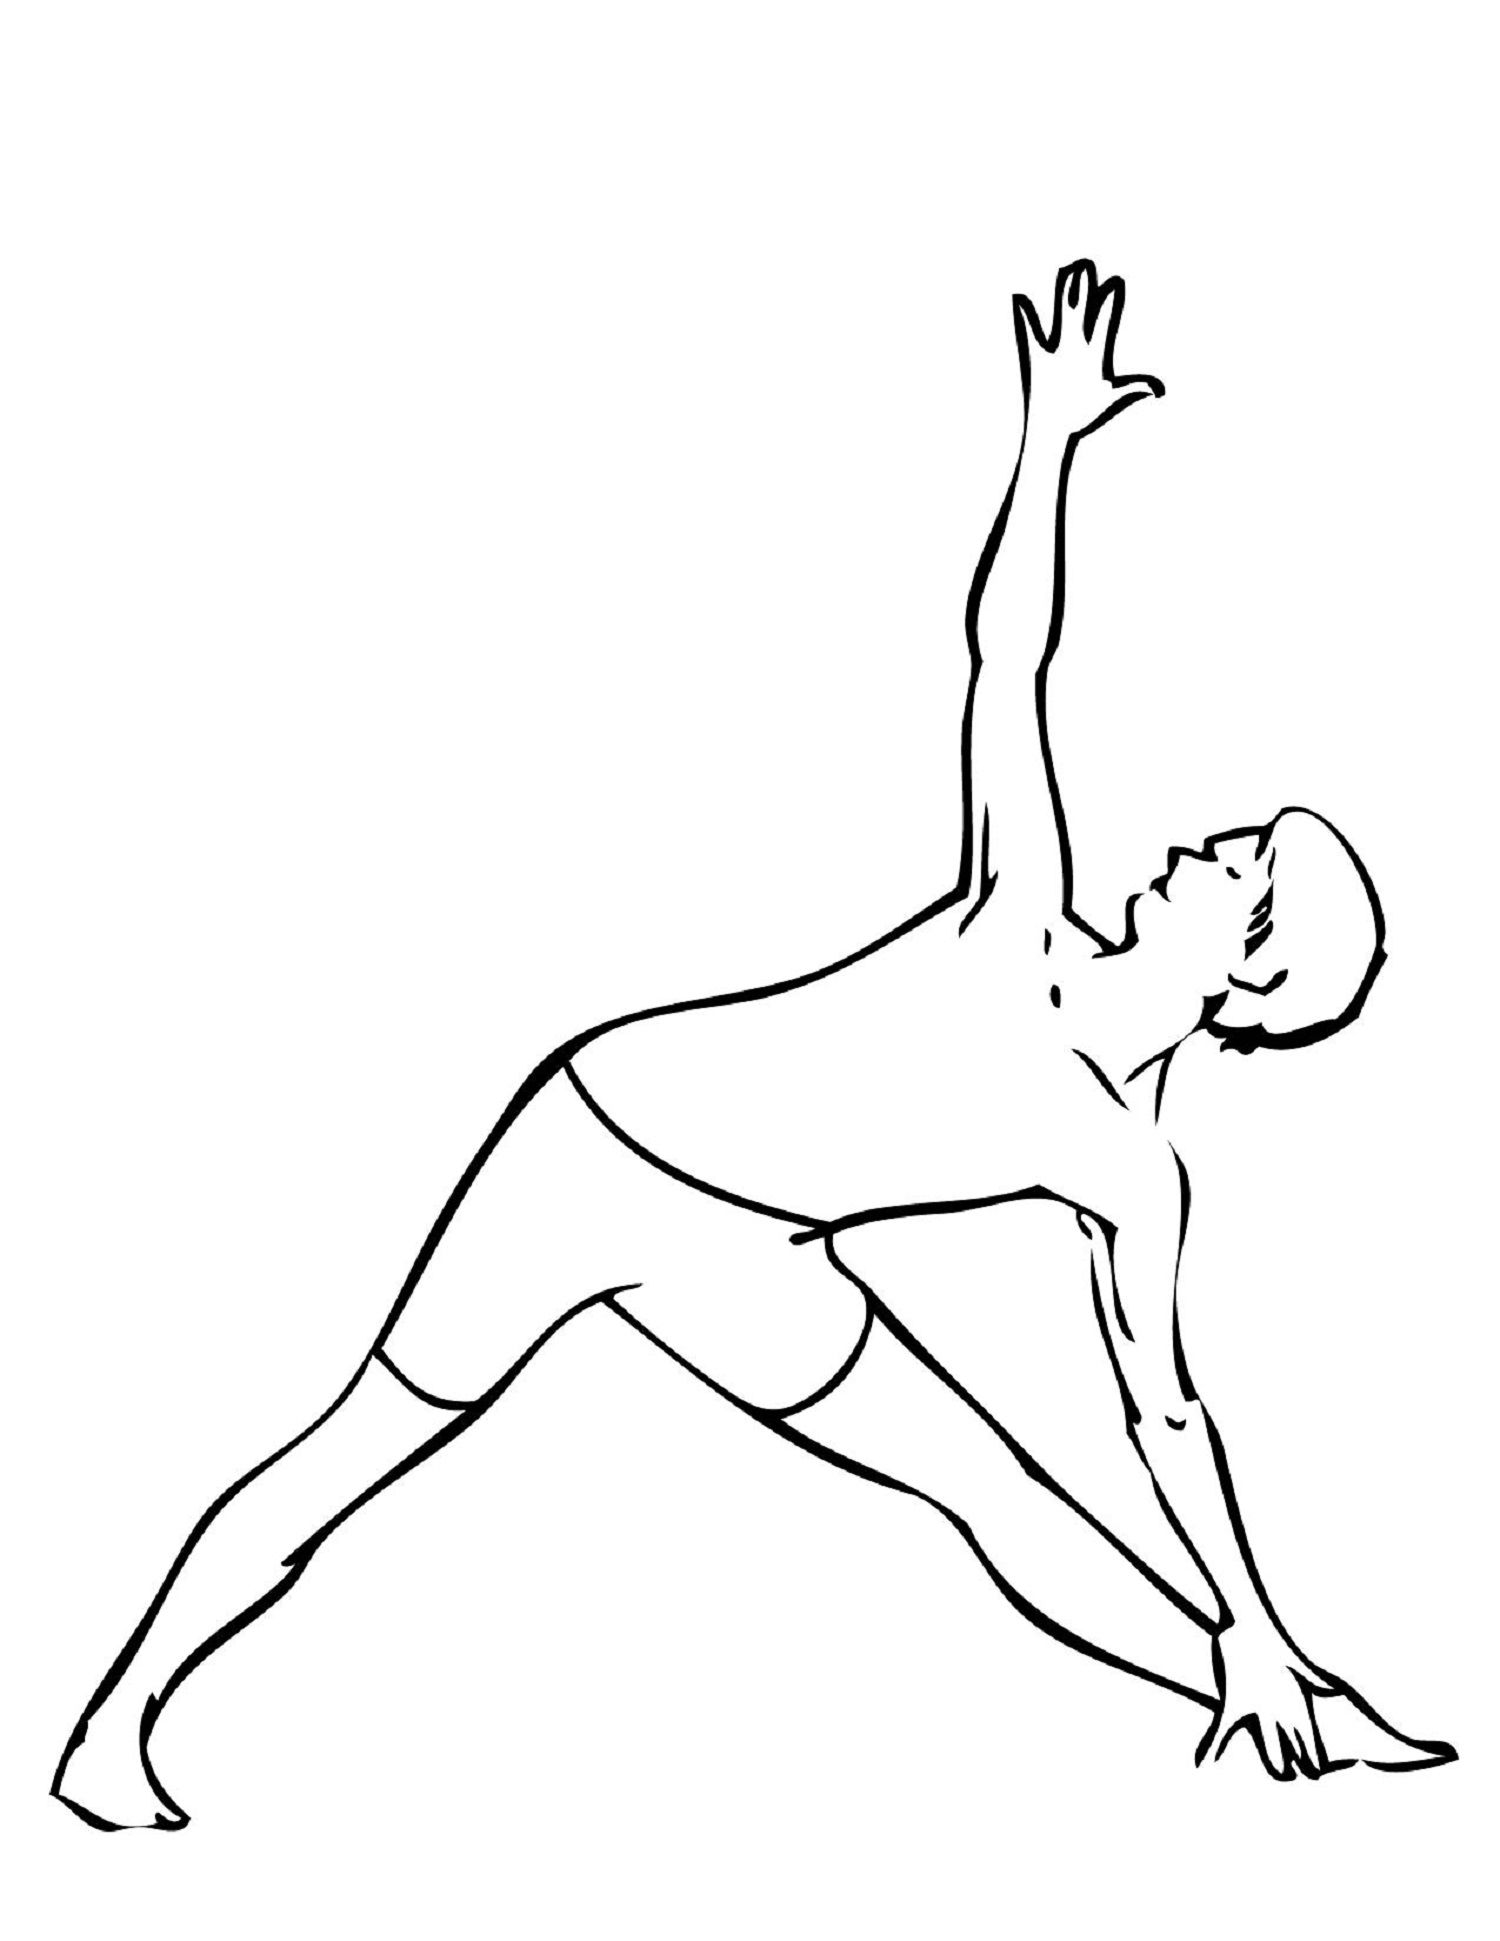 yoga coloring pages for kid sport introduction dear joya kids